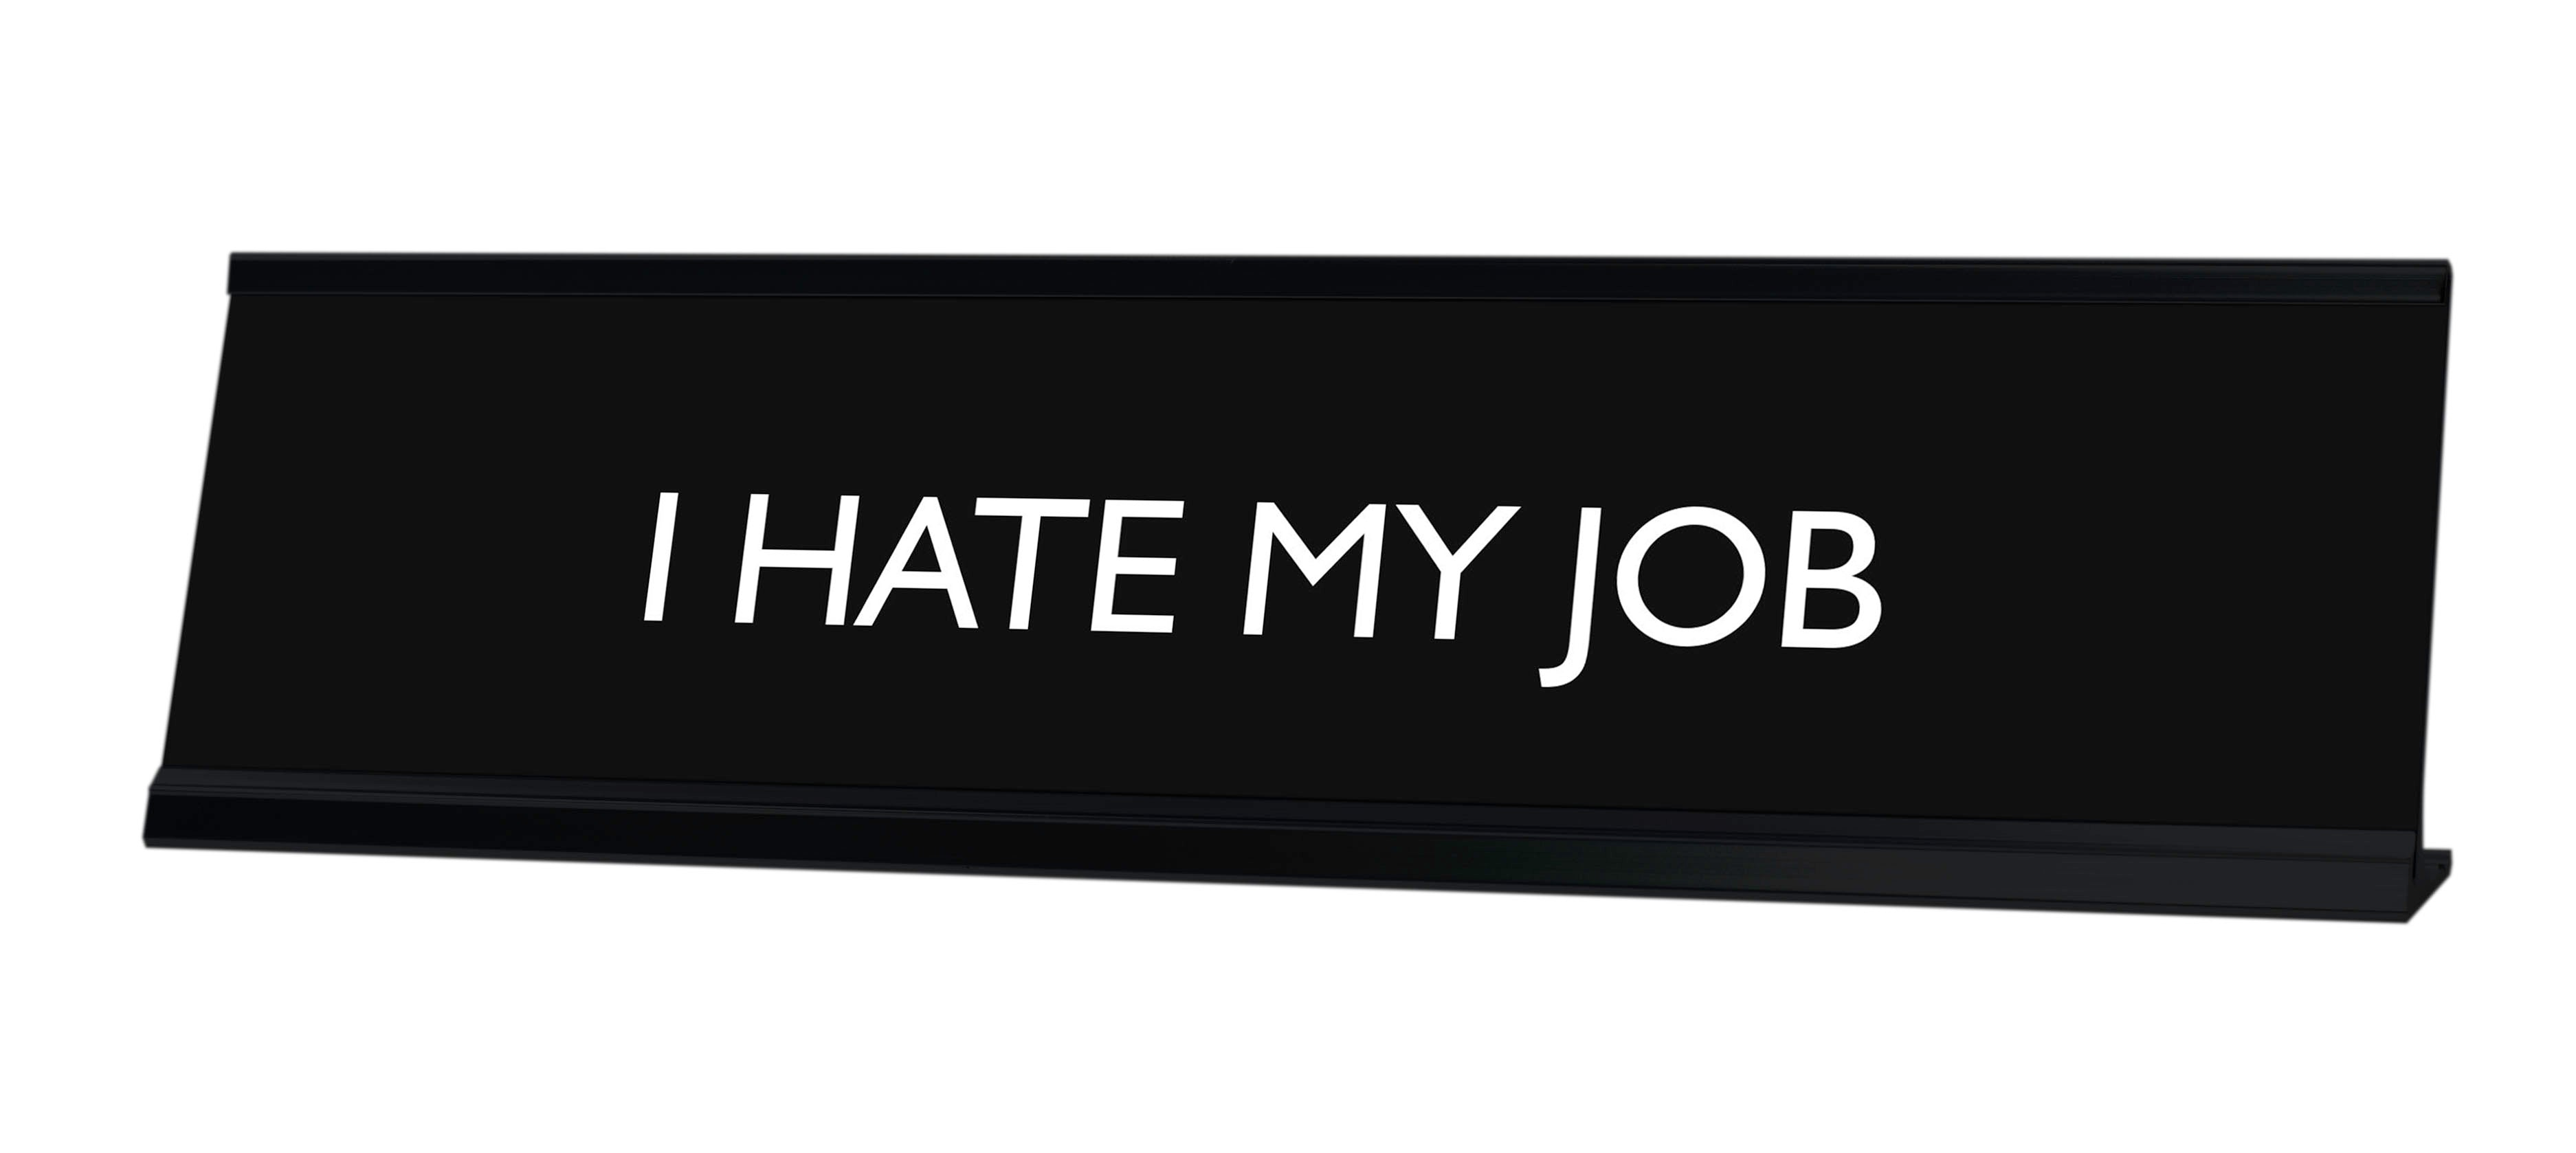 I HATE MY JOB Novelty Desk Sign